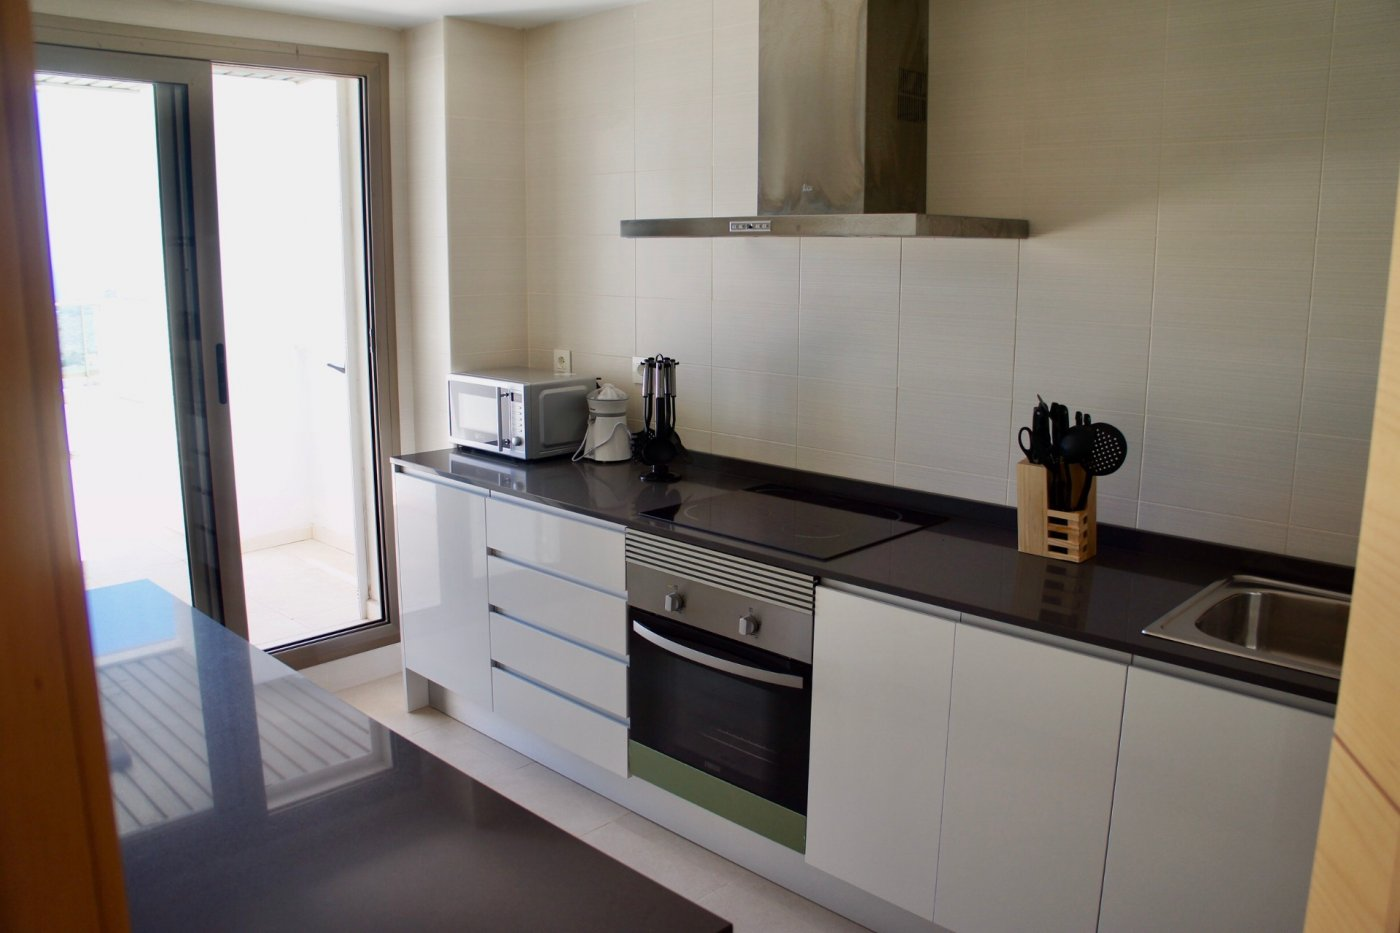 Gallery Image 7 of Big south facing 3 bed, 2 bath apartment with lovely views and 75 m2 terrassesolarium.